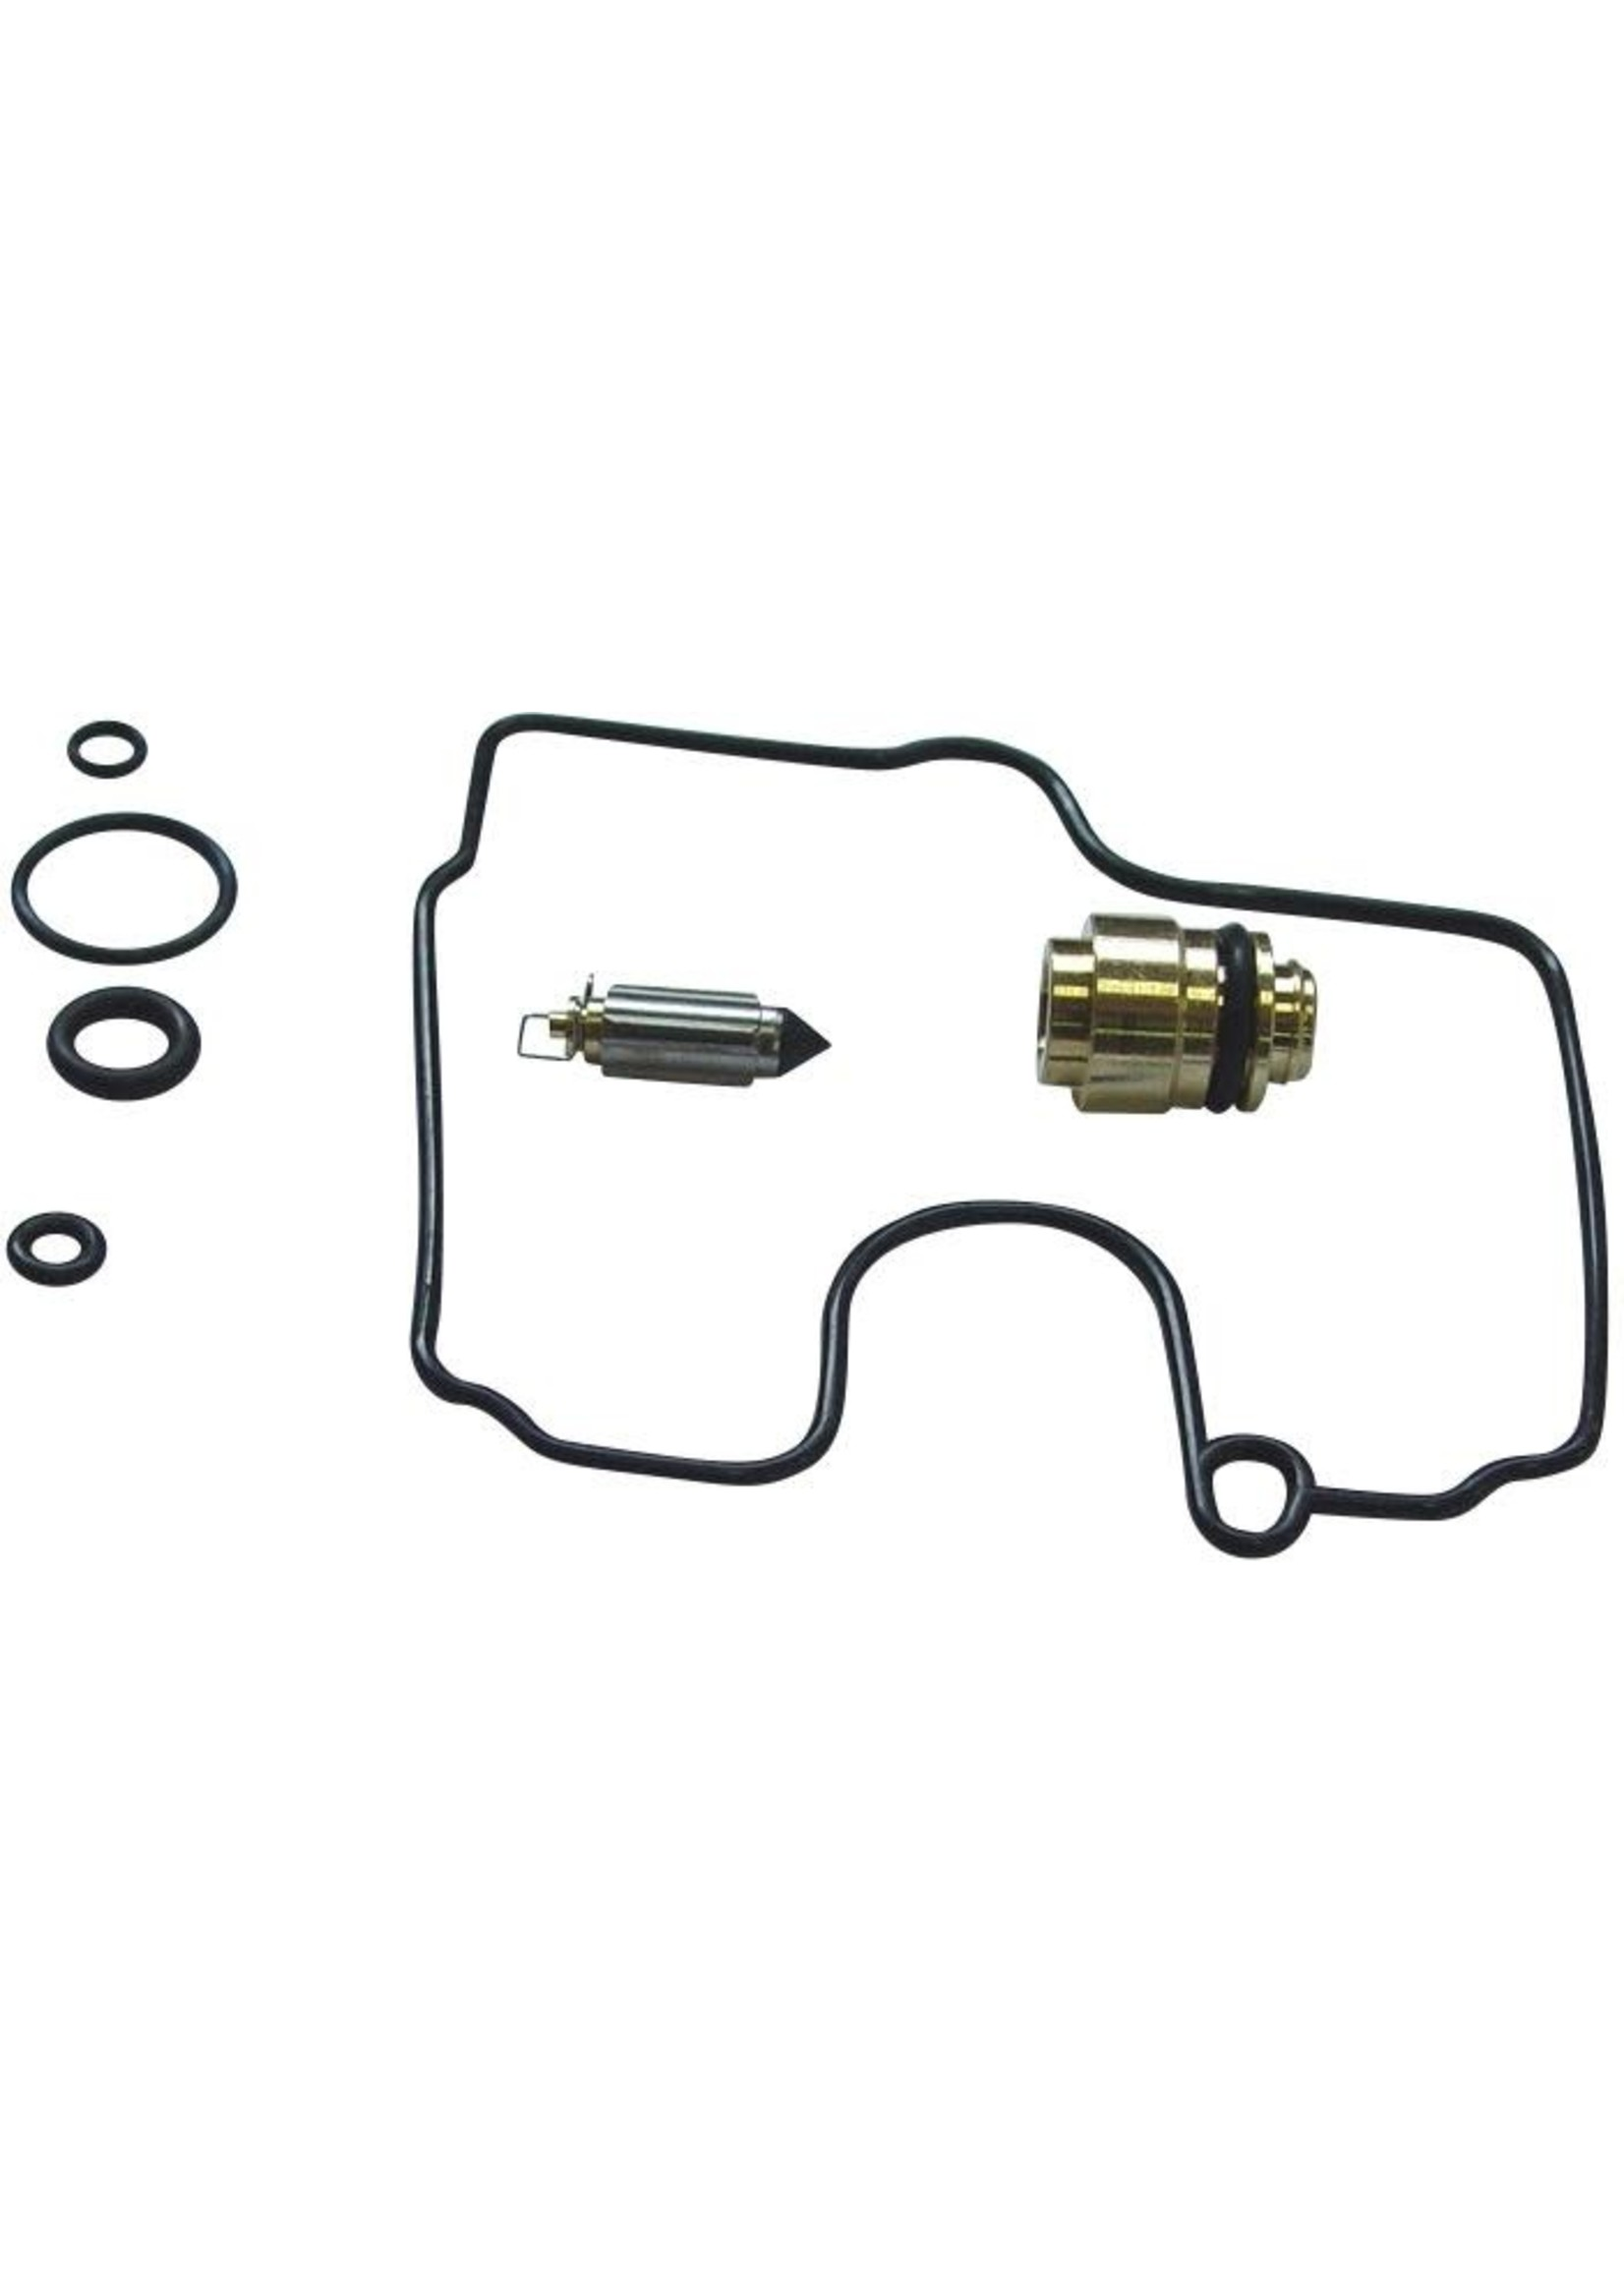 TourMax Tourmax CARBURETOR REPAIR KIT